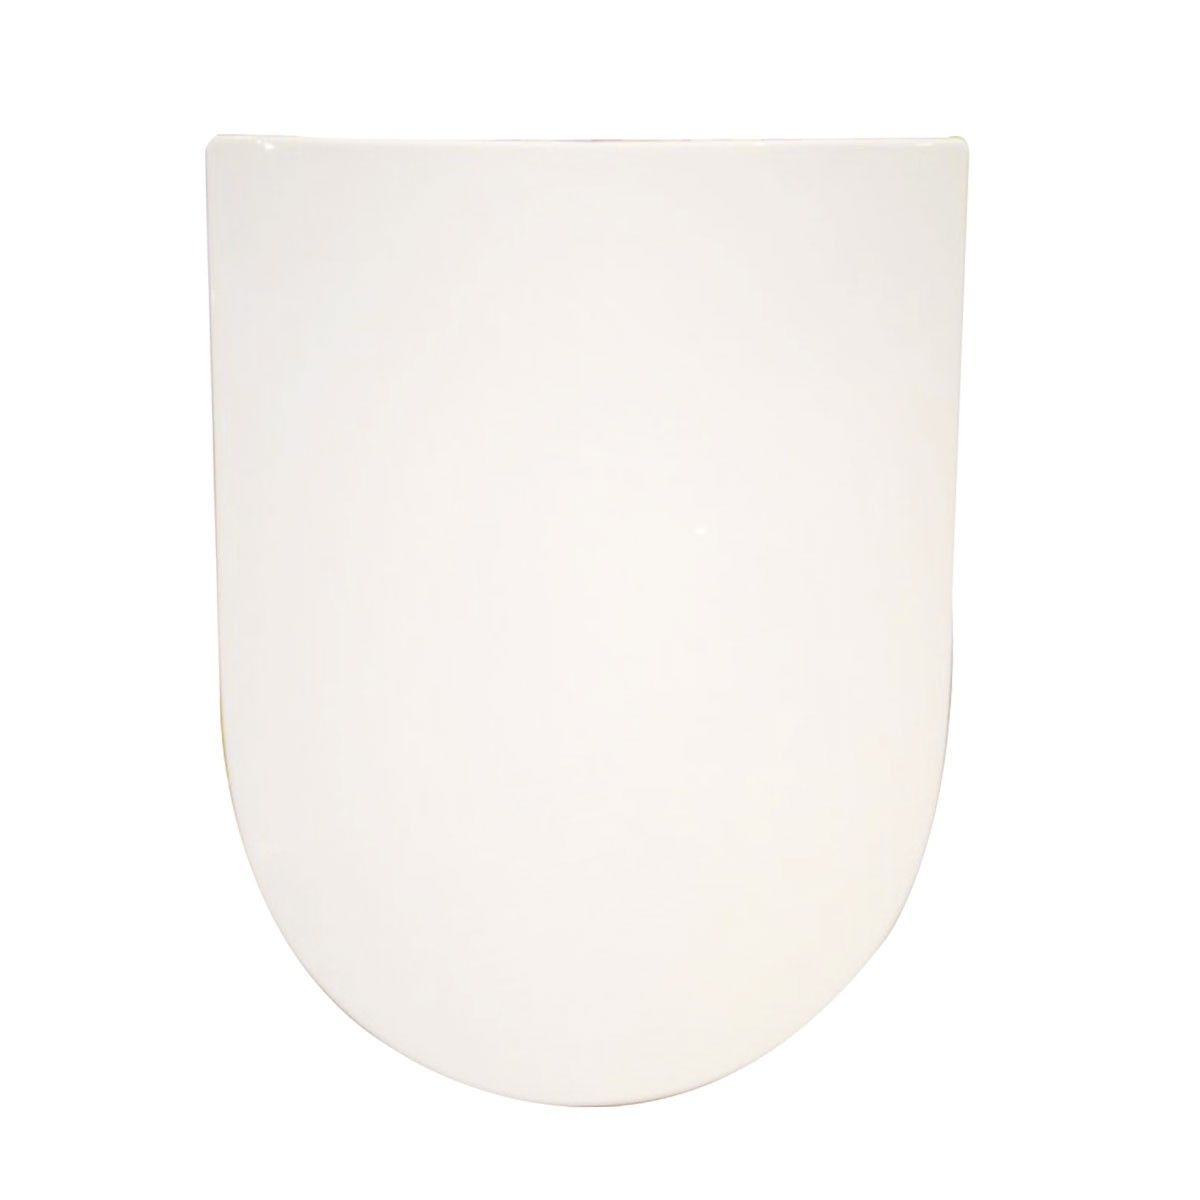 White Soft Close Toilet Seat with Cover (DK-CL-016)